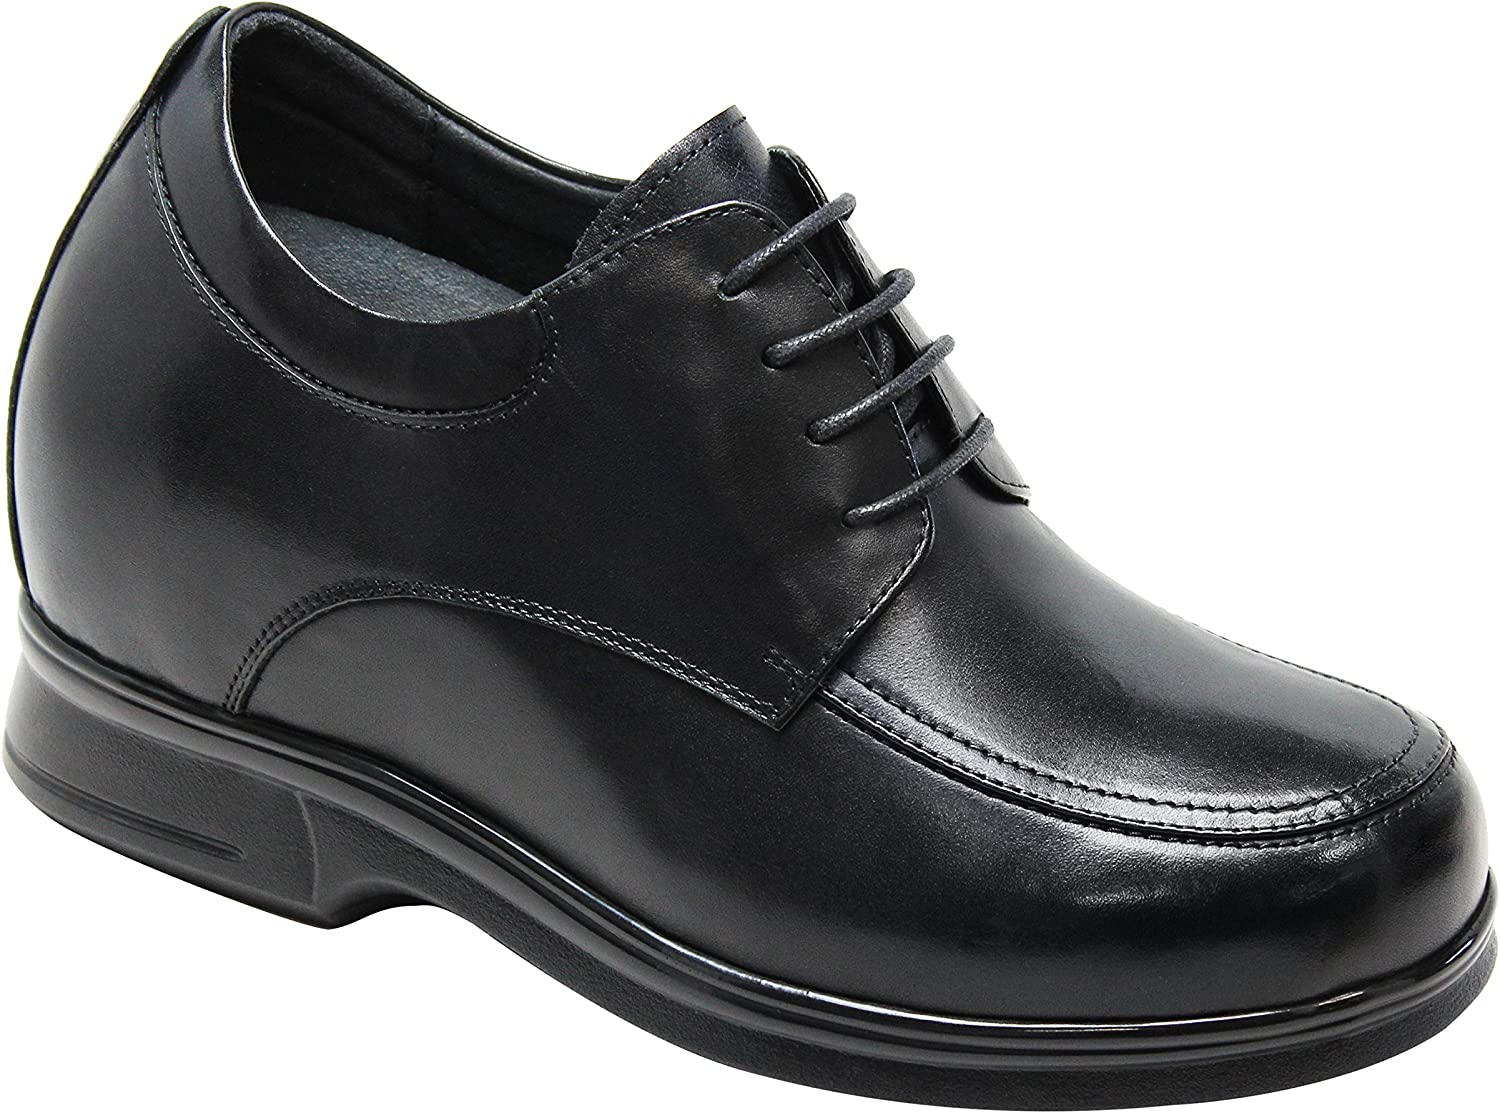 CALTO Men's Invisible Height Increasing Elevator shoes - Black Premium Leather Lace-up Casual Oxfords - 4.4 Inches Taller - T5263